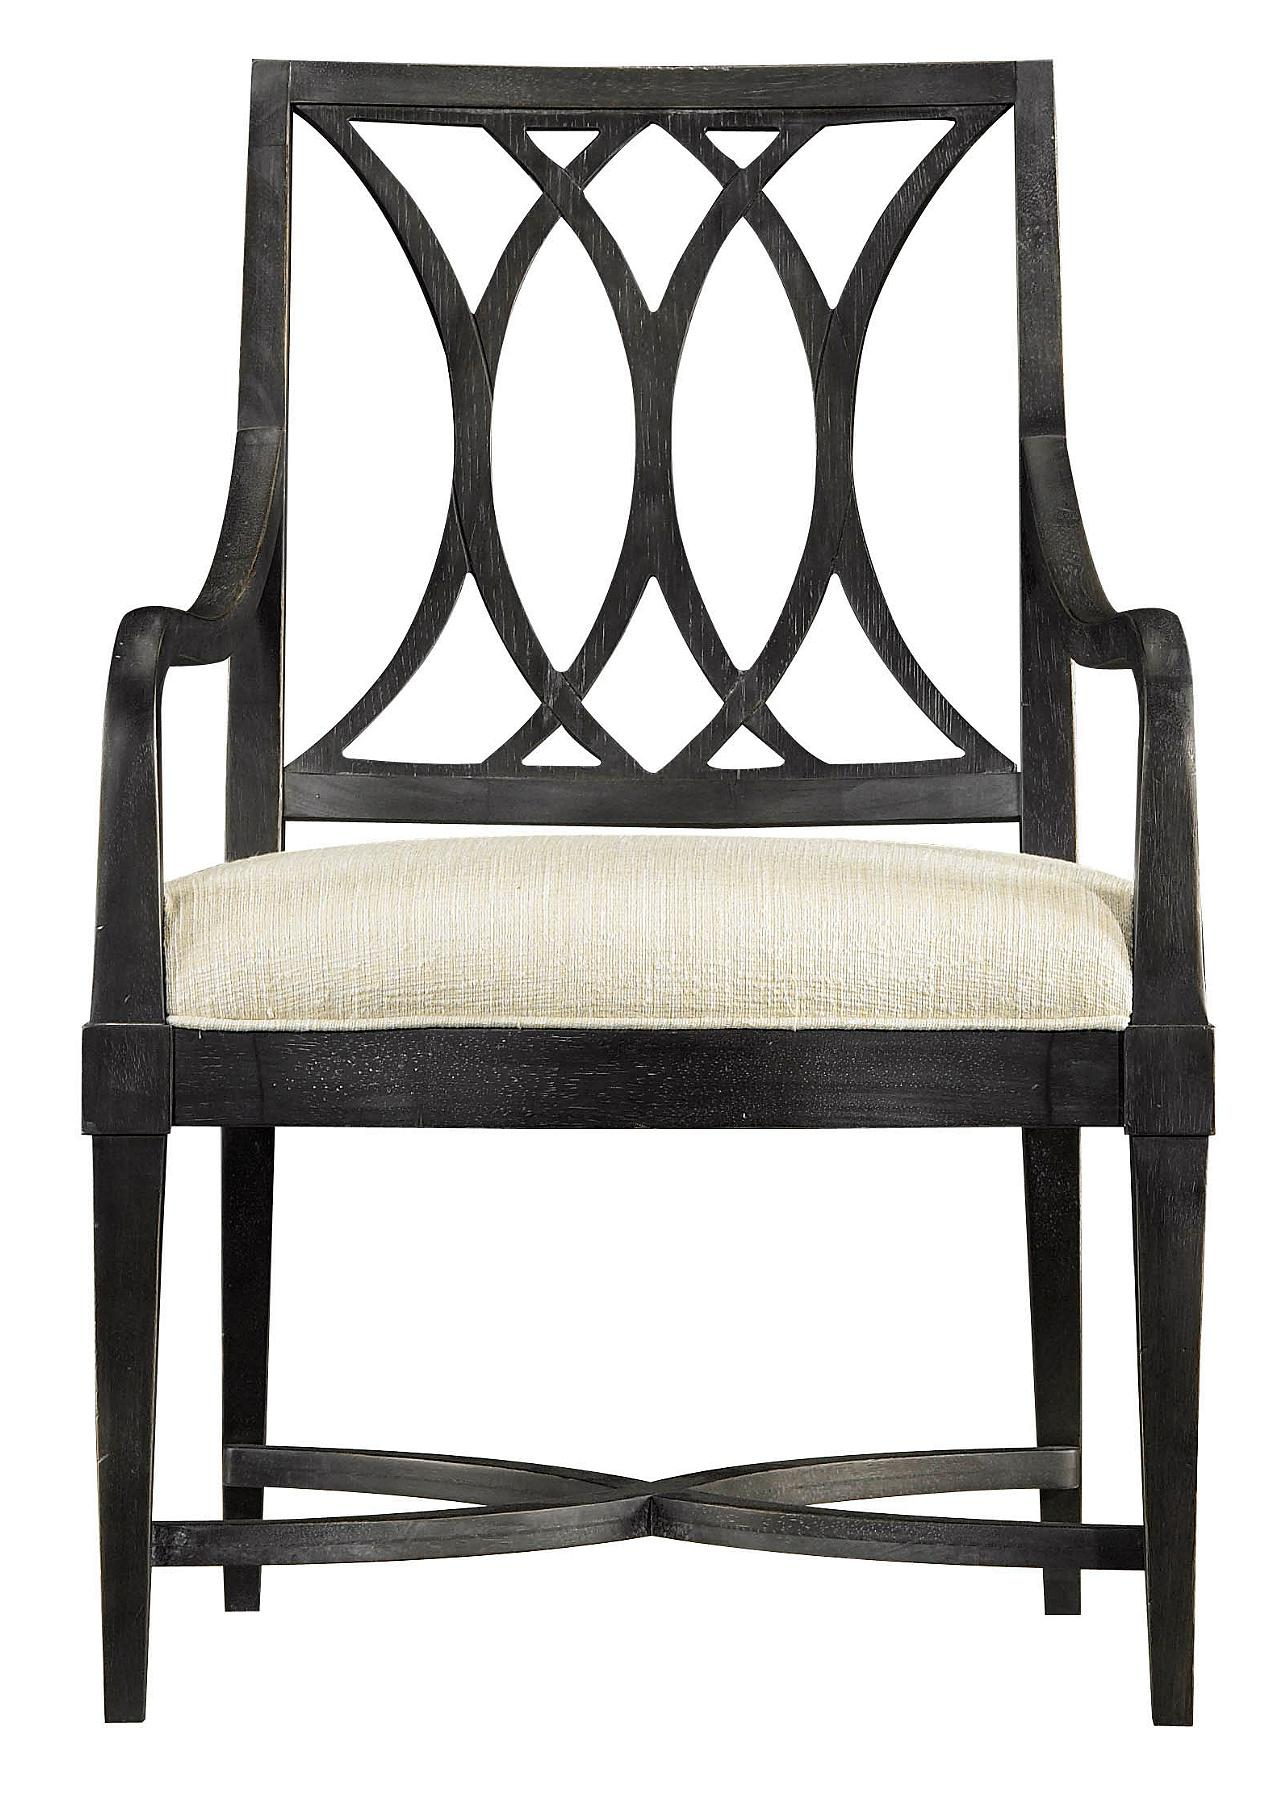 Stanley Furniture Coastal Living Resort Heritage Coast Arm Chair - Item Number: 062-F1-70